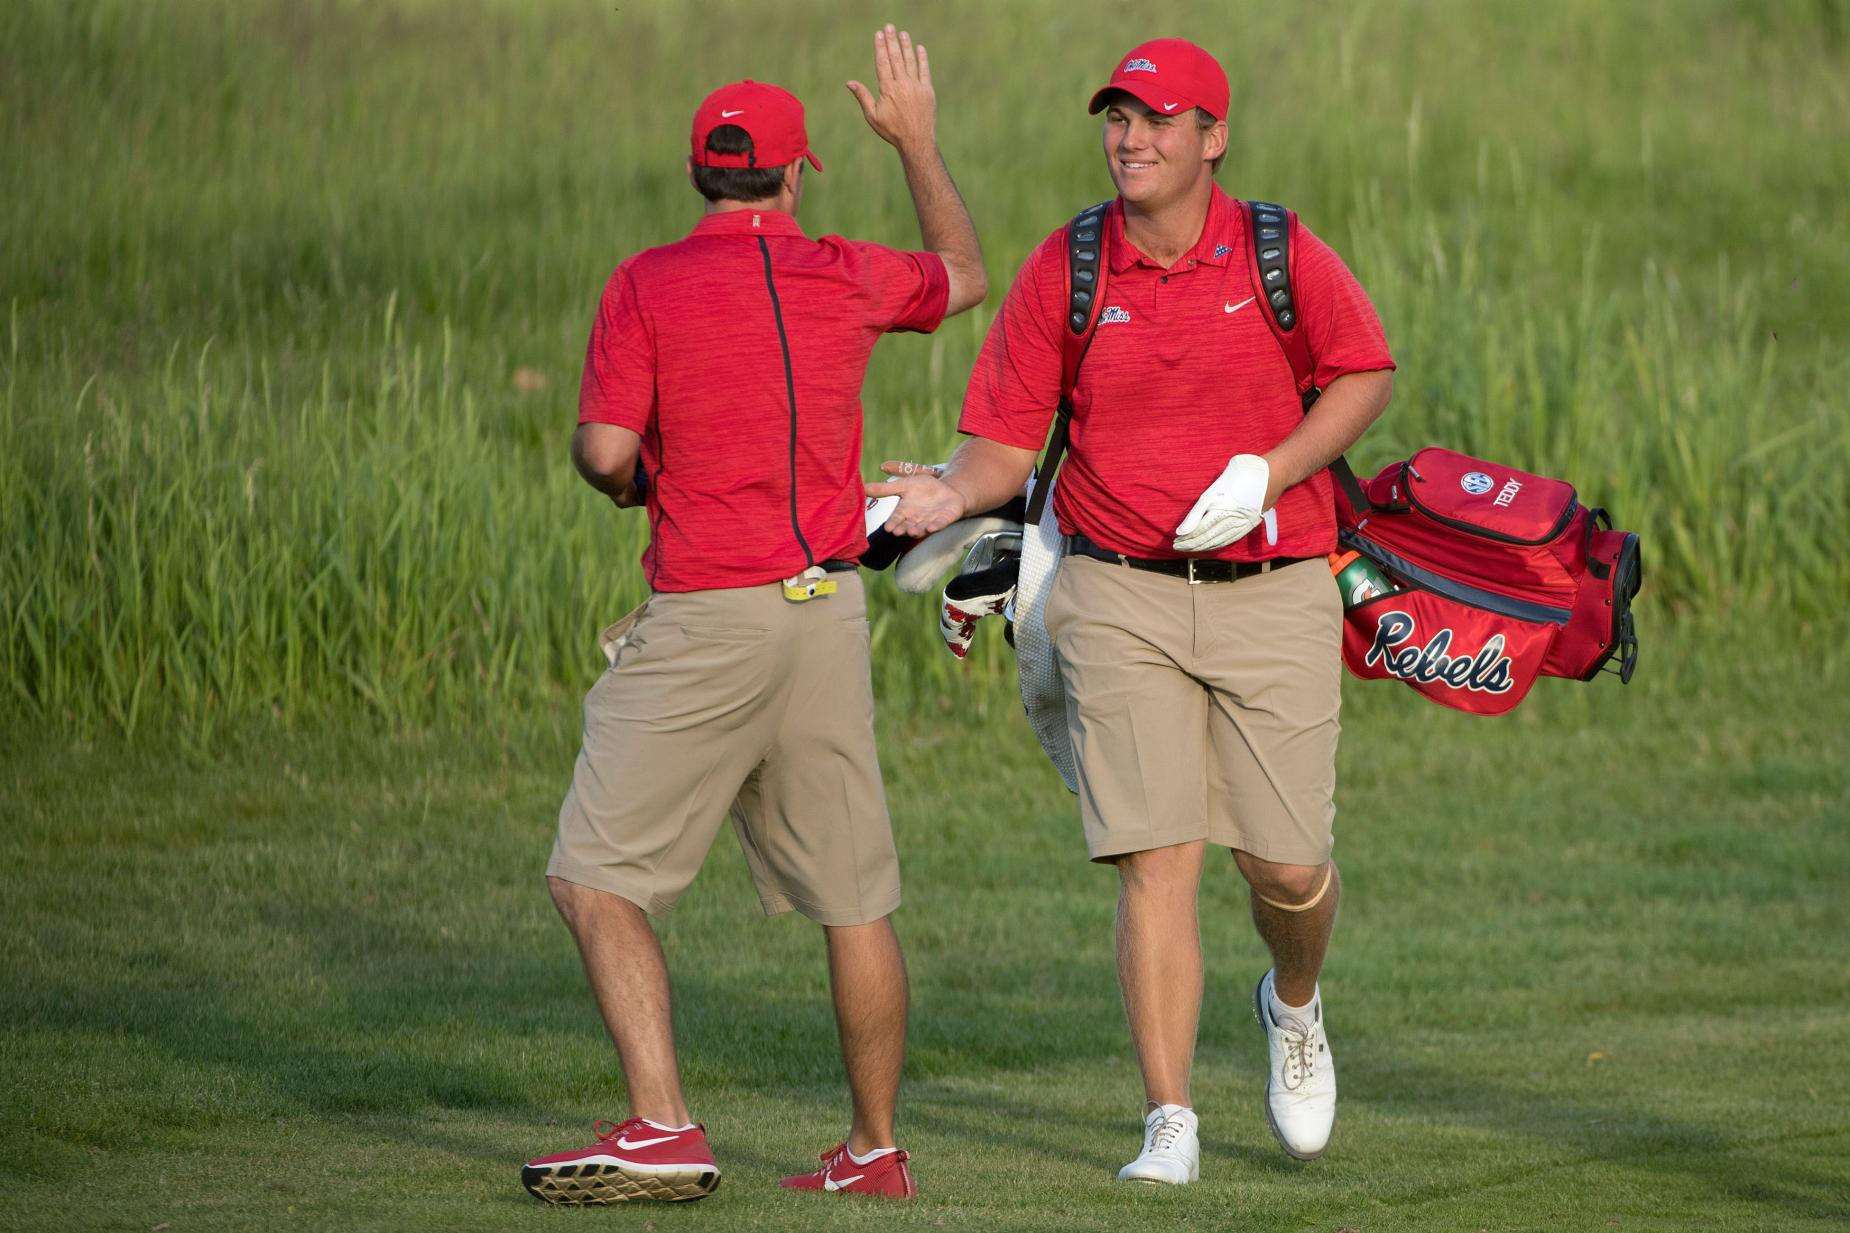 chris-malloy-braden-thornberry-mississippi-ncaa-championship-2017.jpg